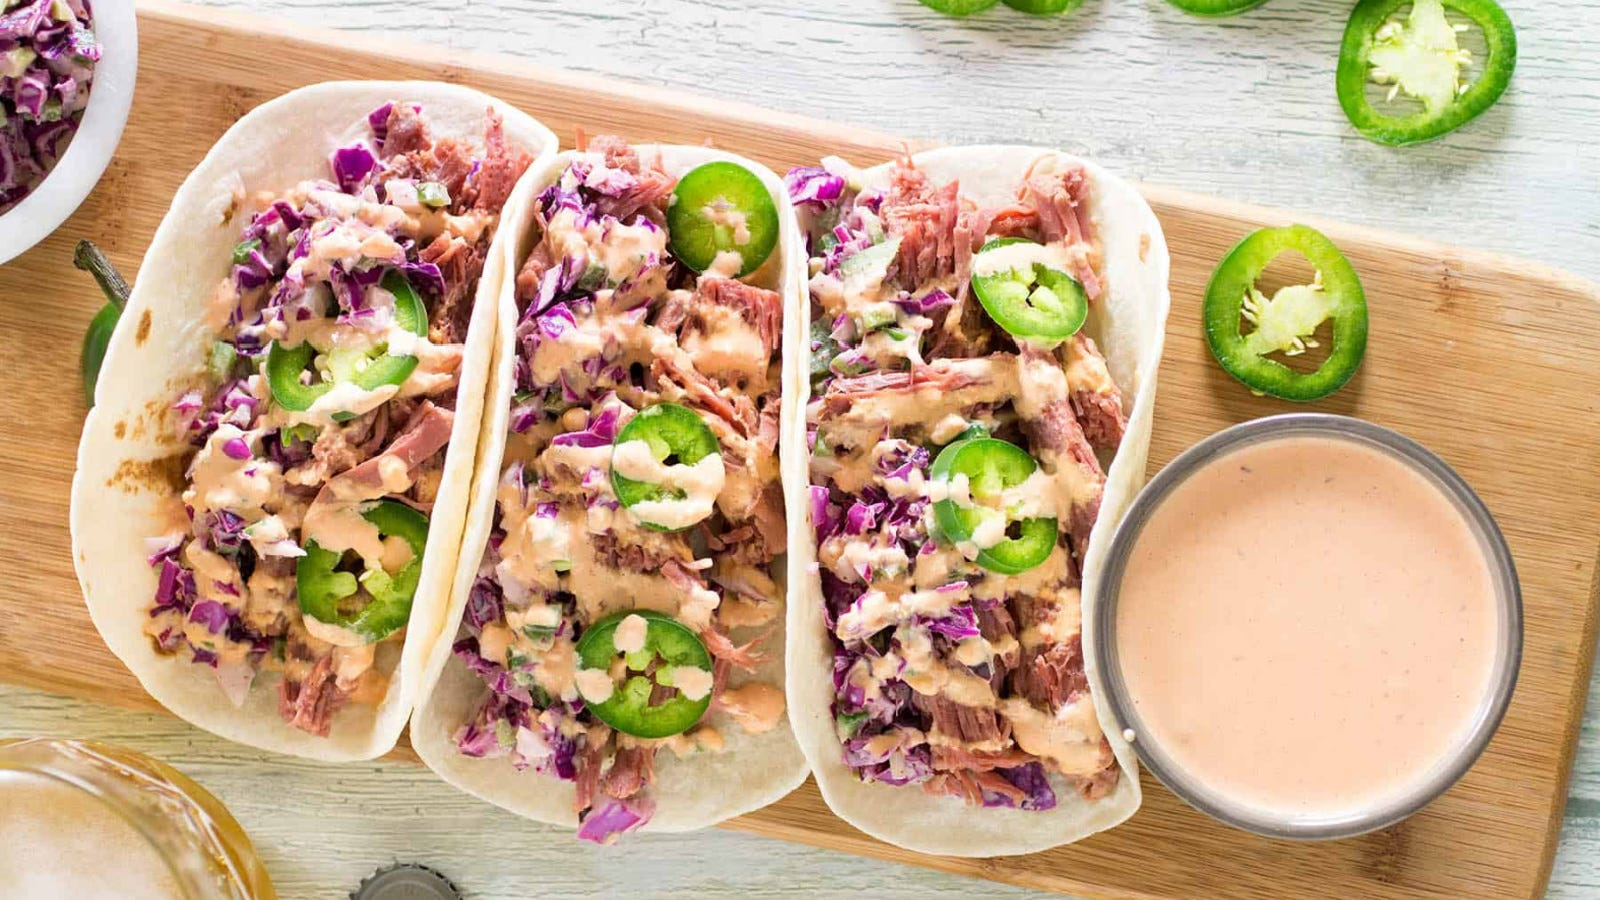 Three flour tortillas filled with shredded corned beef, topped with a slaw and Russian dressing on the side with sliced fresh jalapeno scattered nearby.